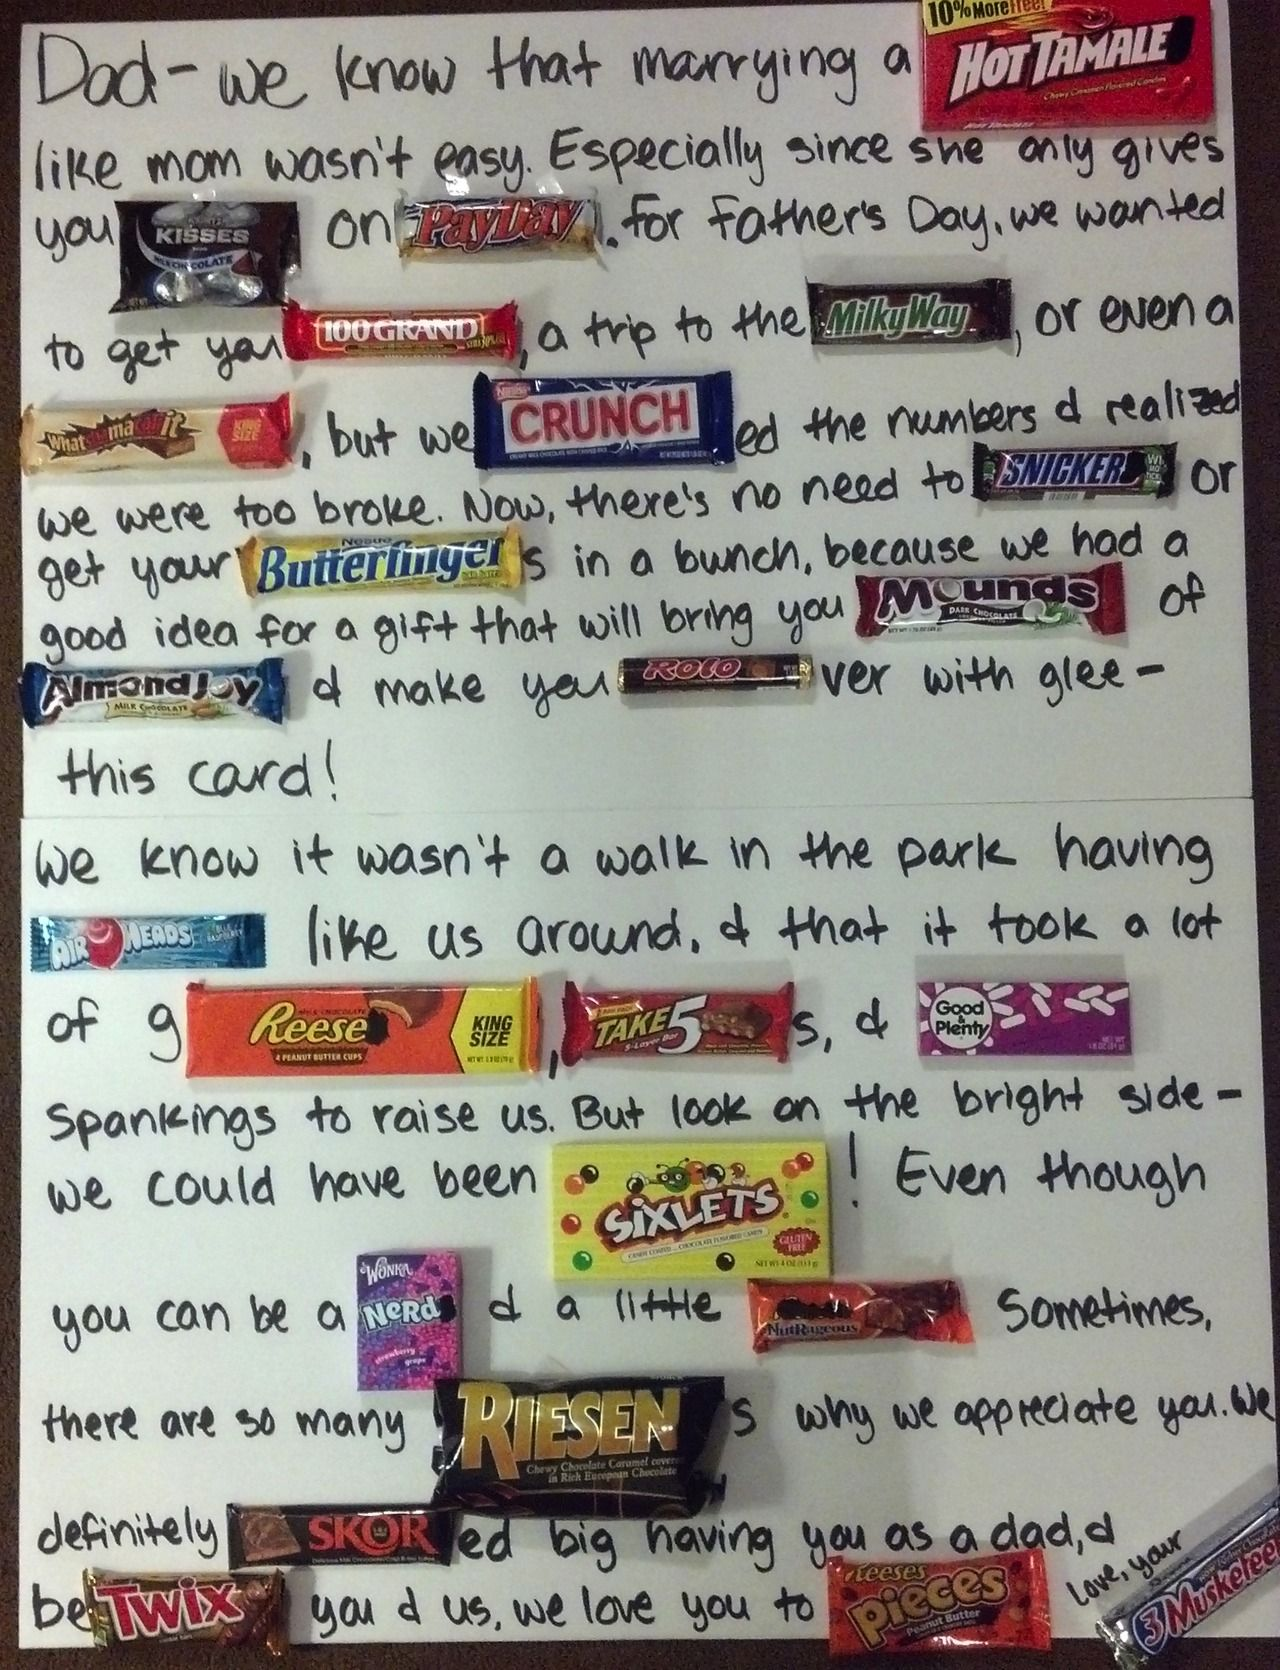 weddings Check out the candy letter I made for my dad on Fathers